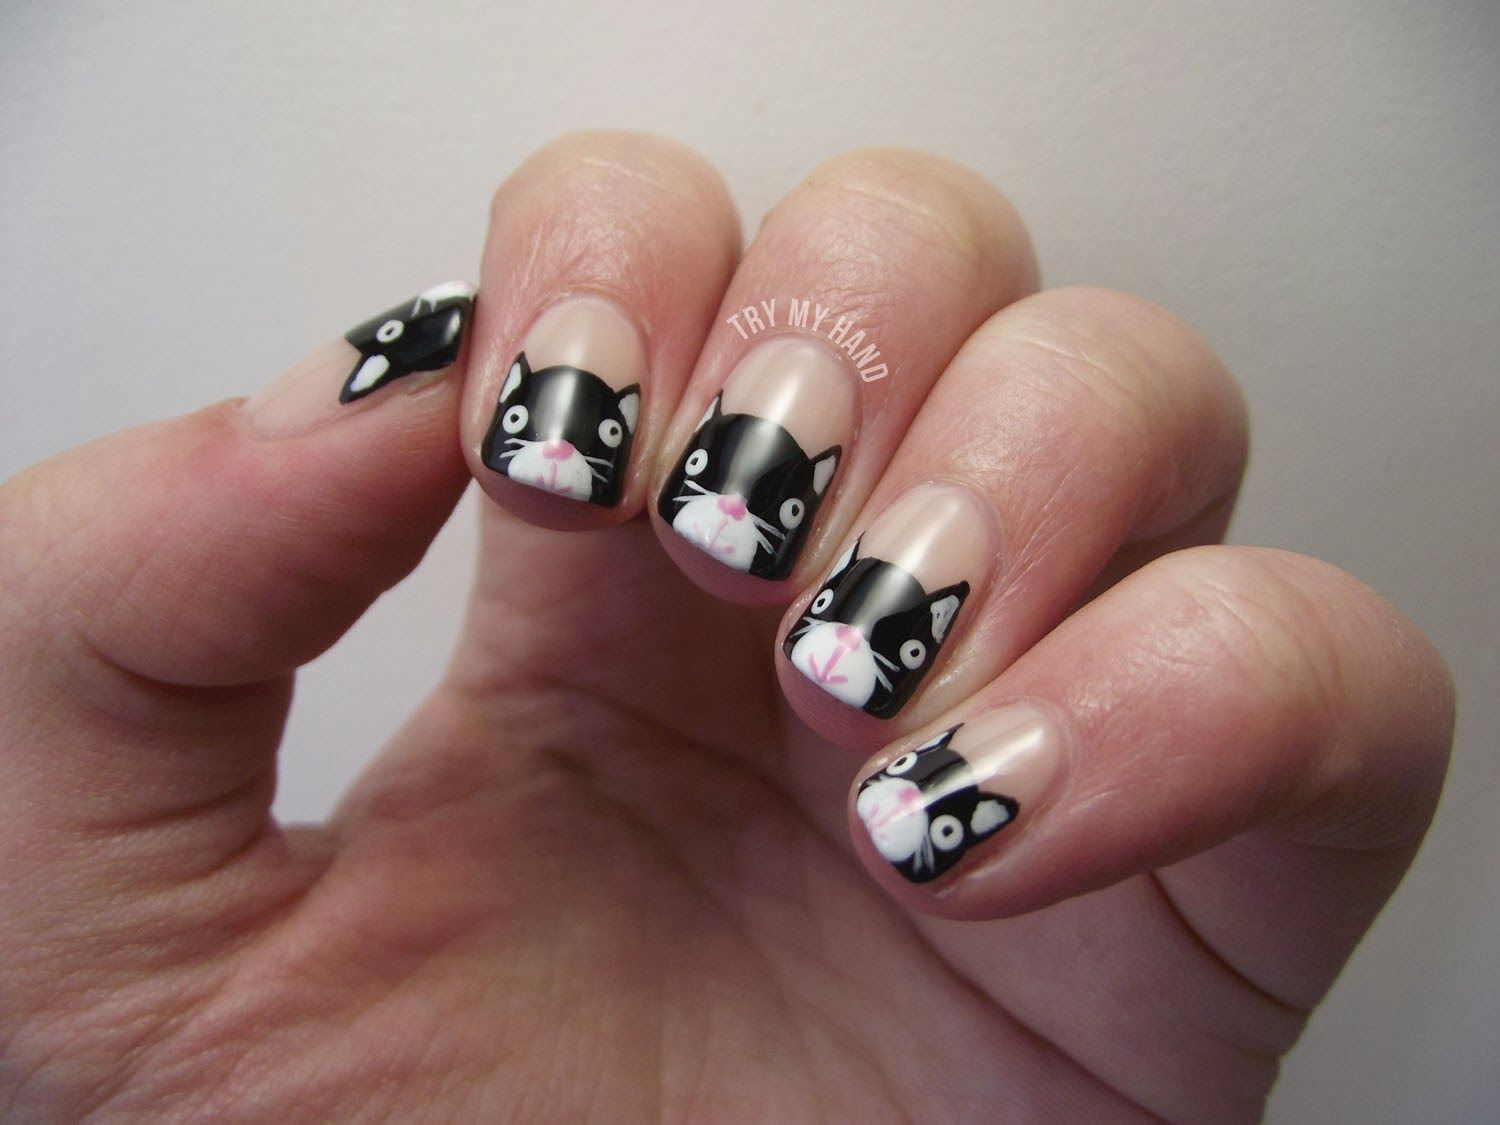 Simple Nail Designs For Beginners | ... nail-art-design-ideas-for-teens-nail-art-designs-step-by-step-at-home